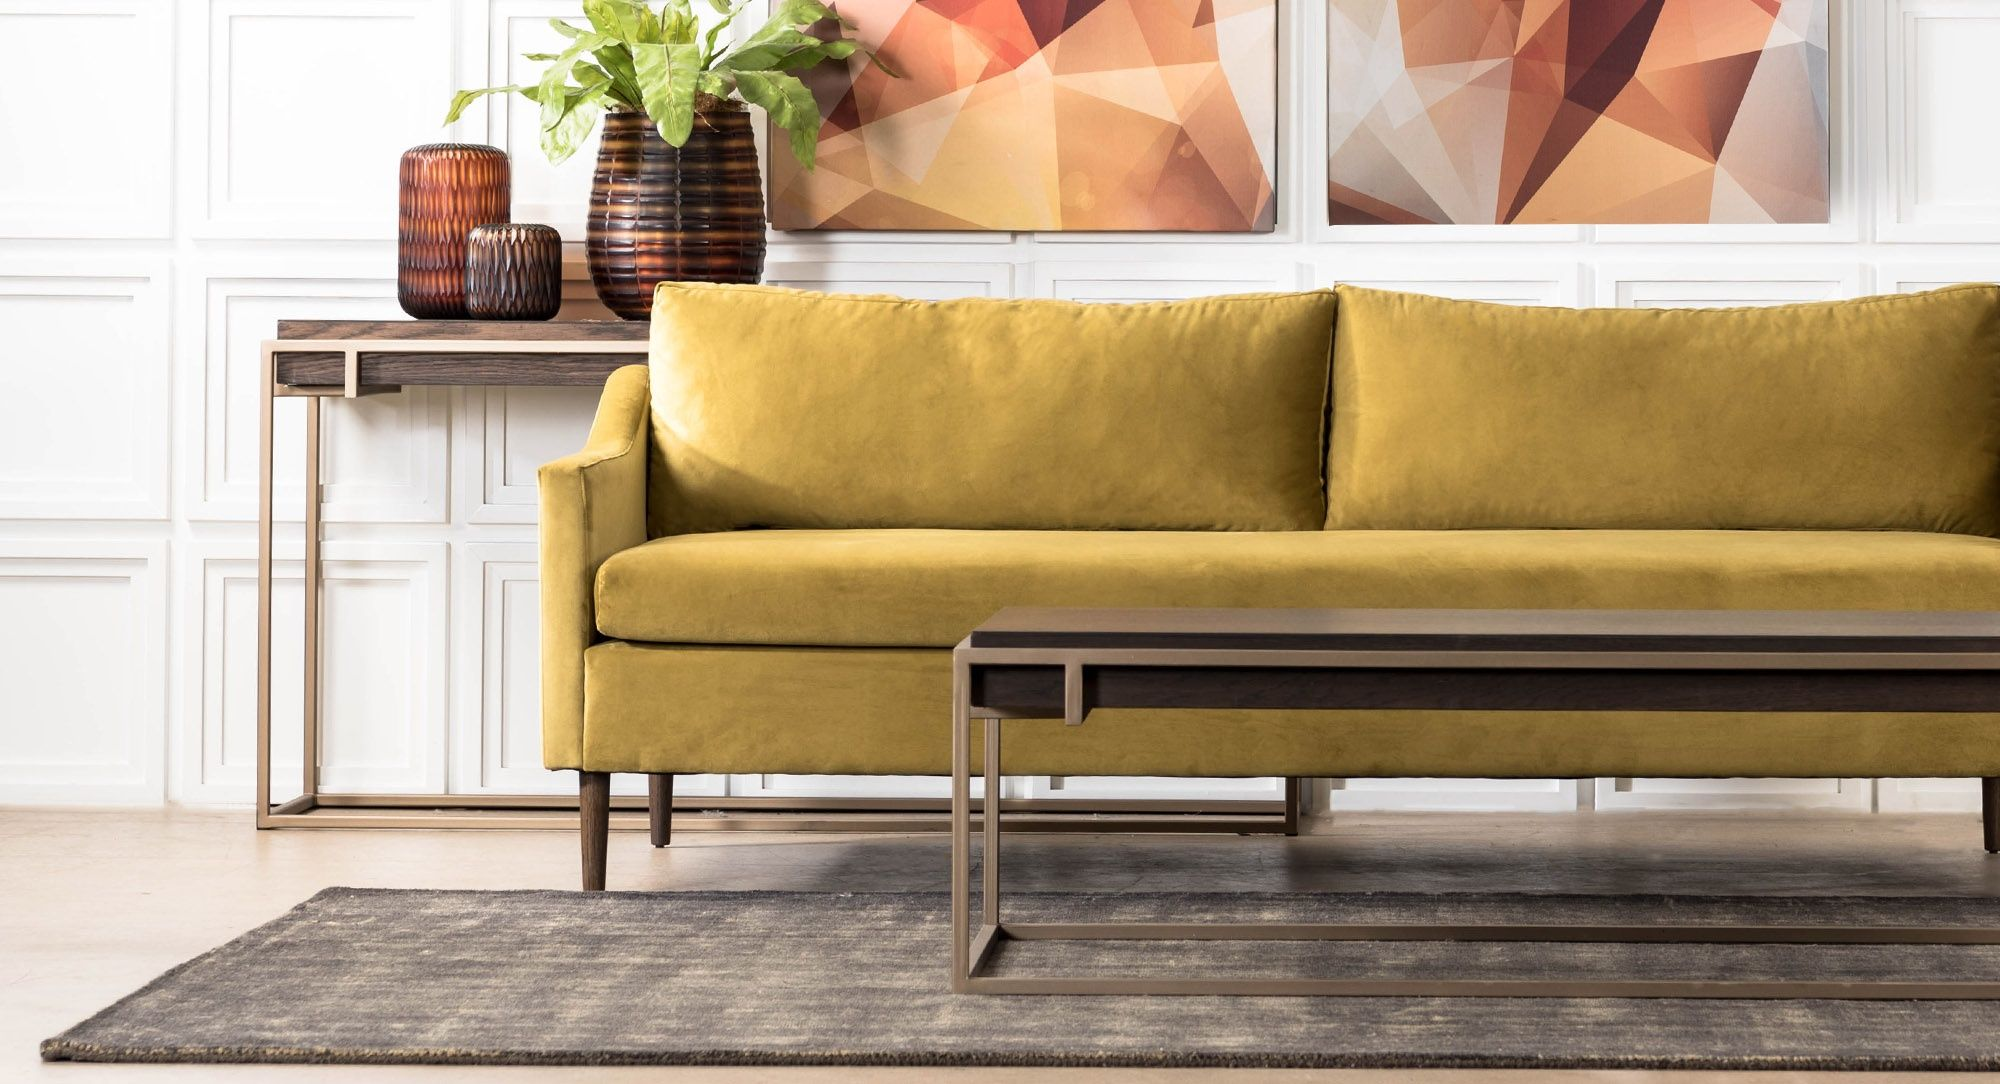 Shf on trend quality furniture decor store in south africa